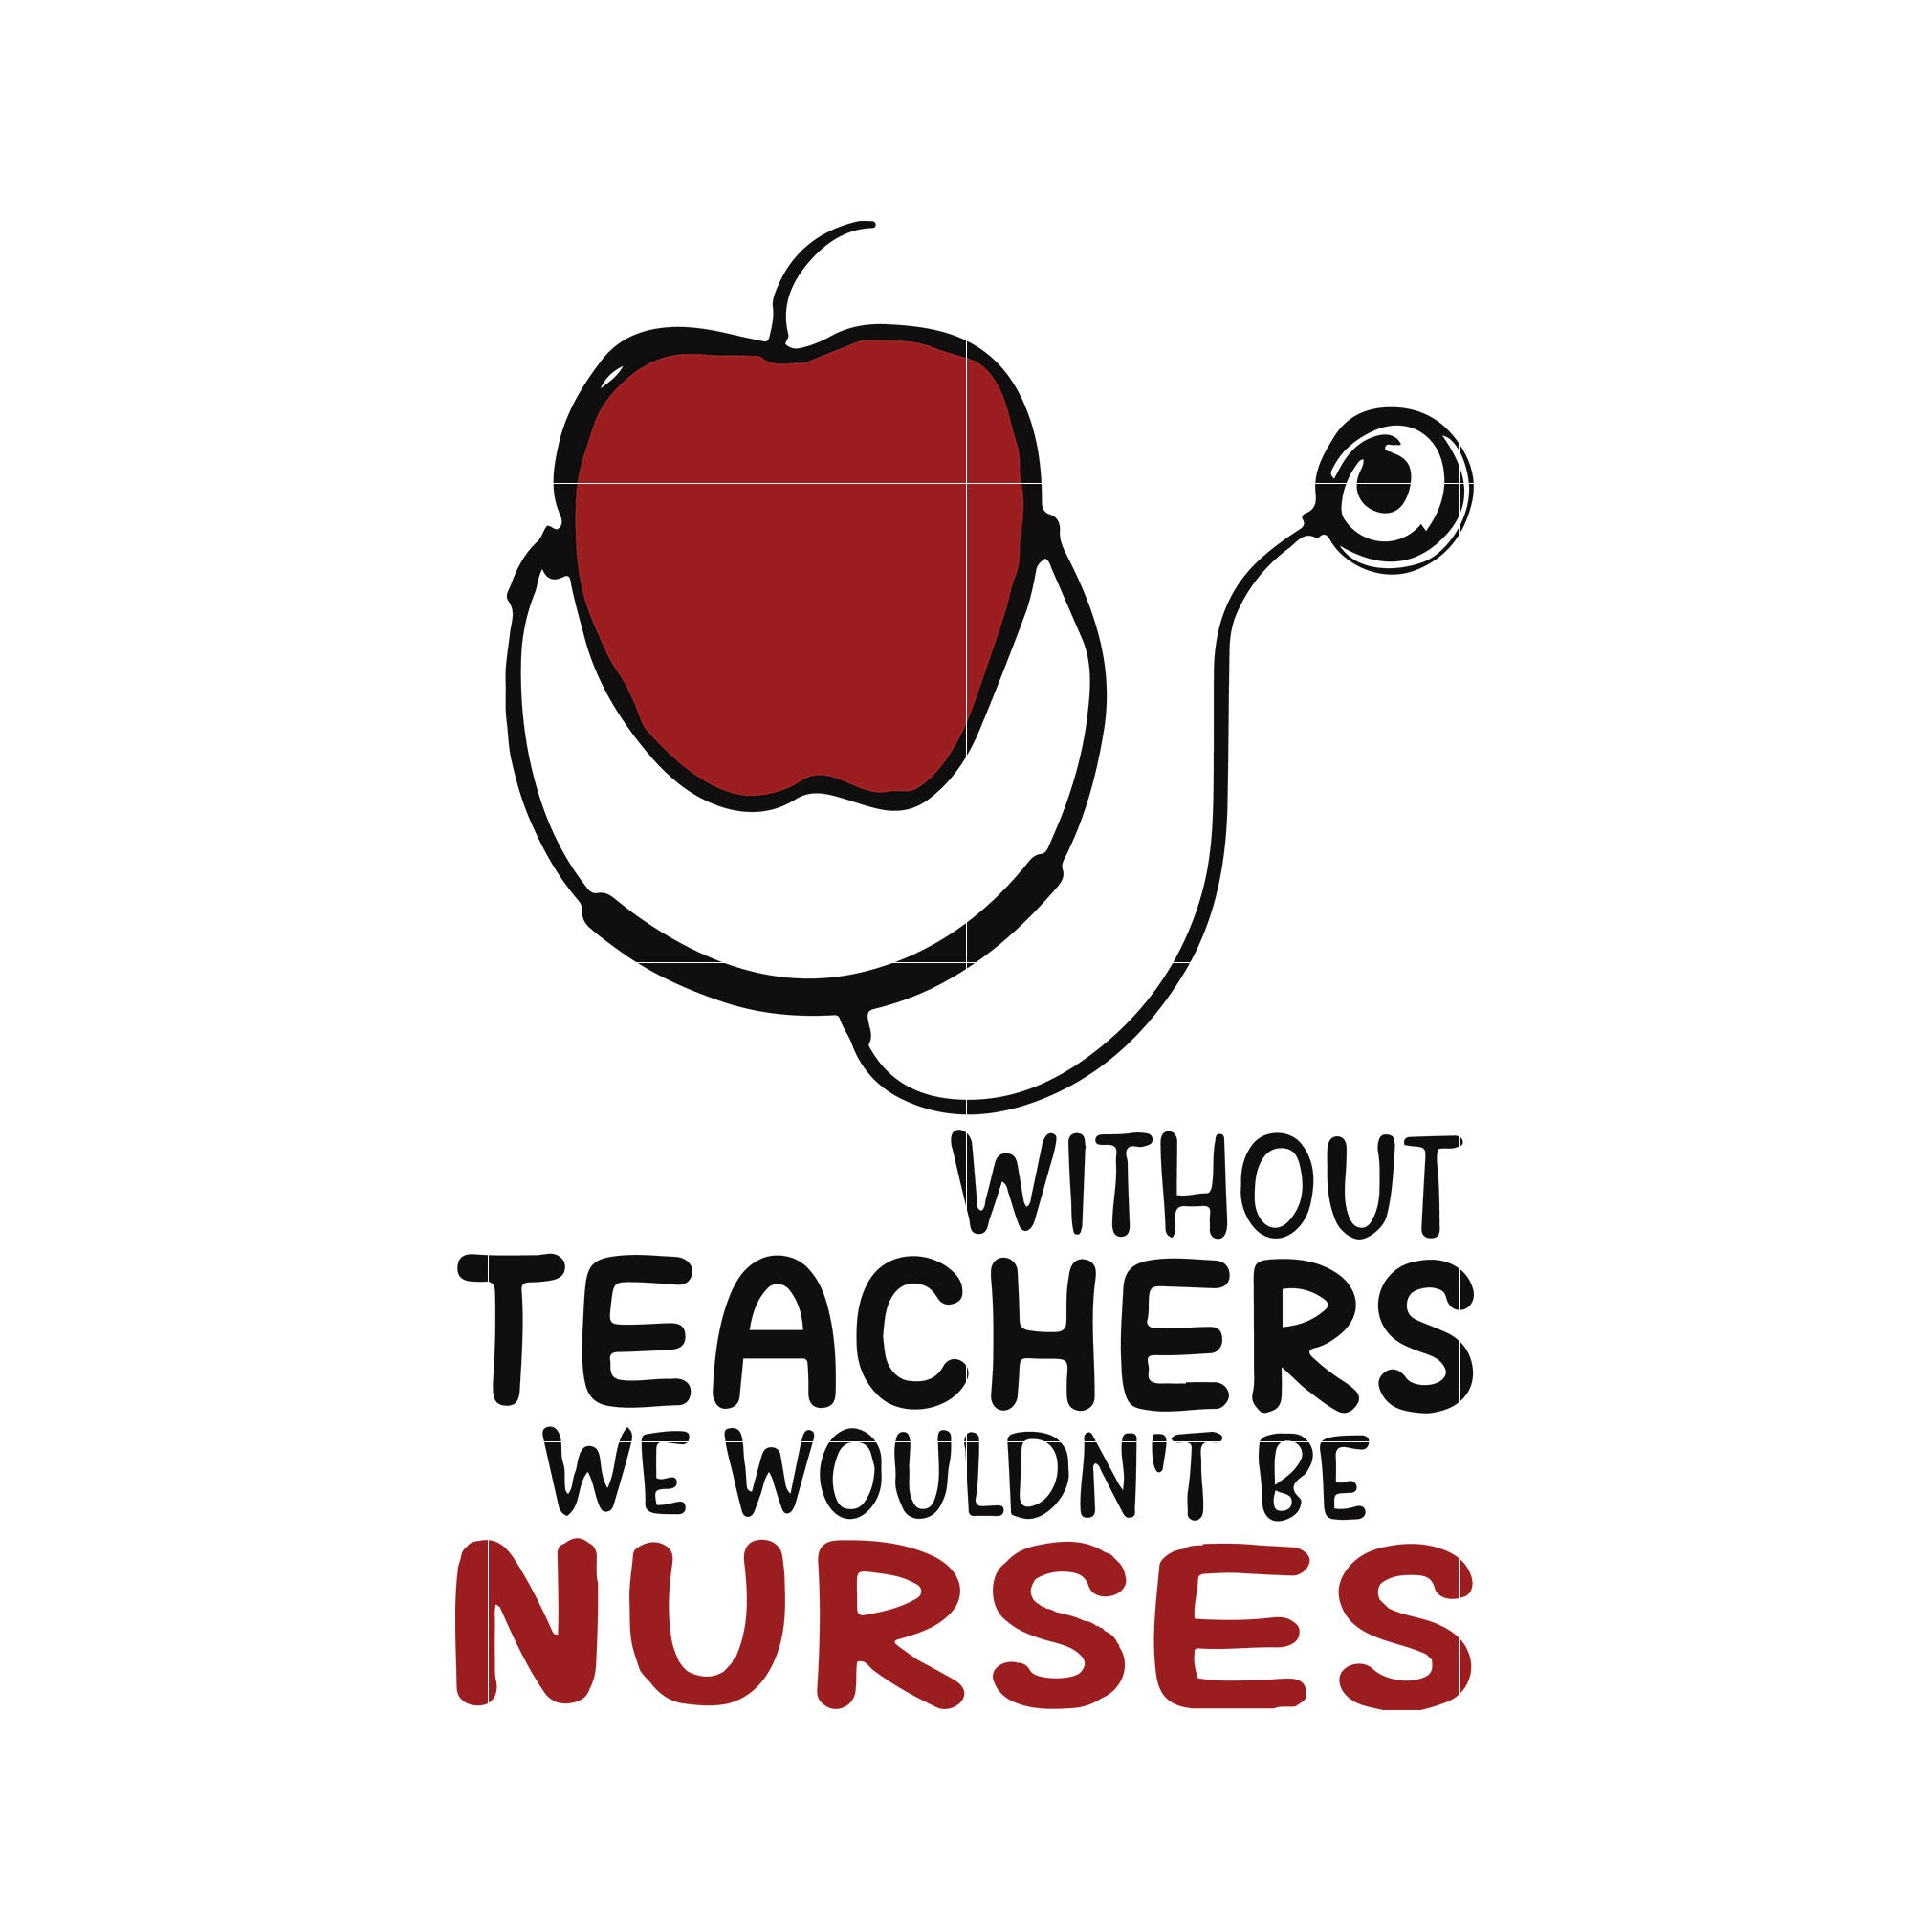 Without teachers we wouldn't be nurses svg,dxf,eps,png digital file